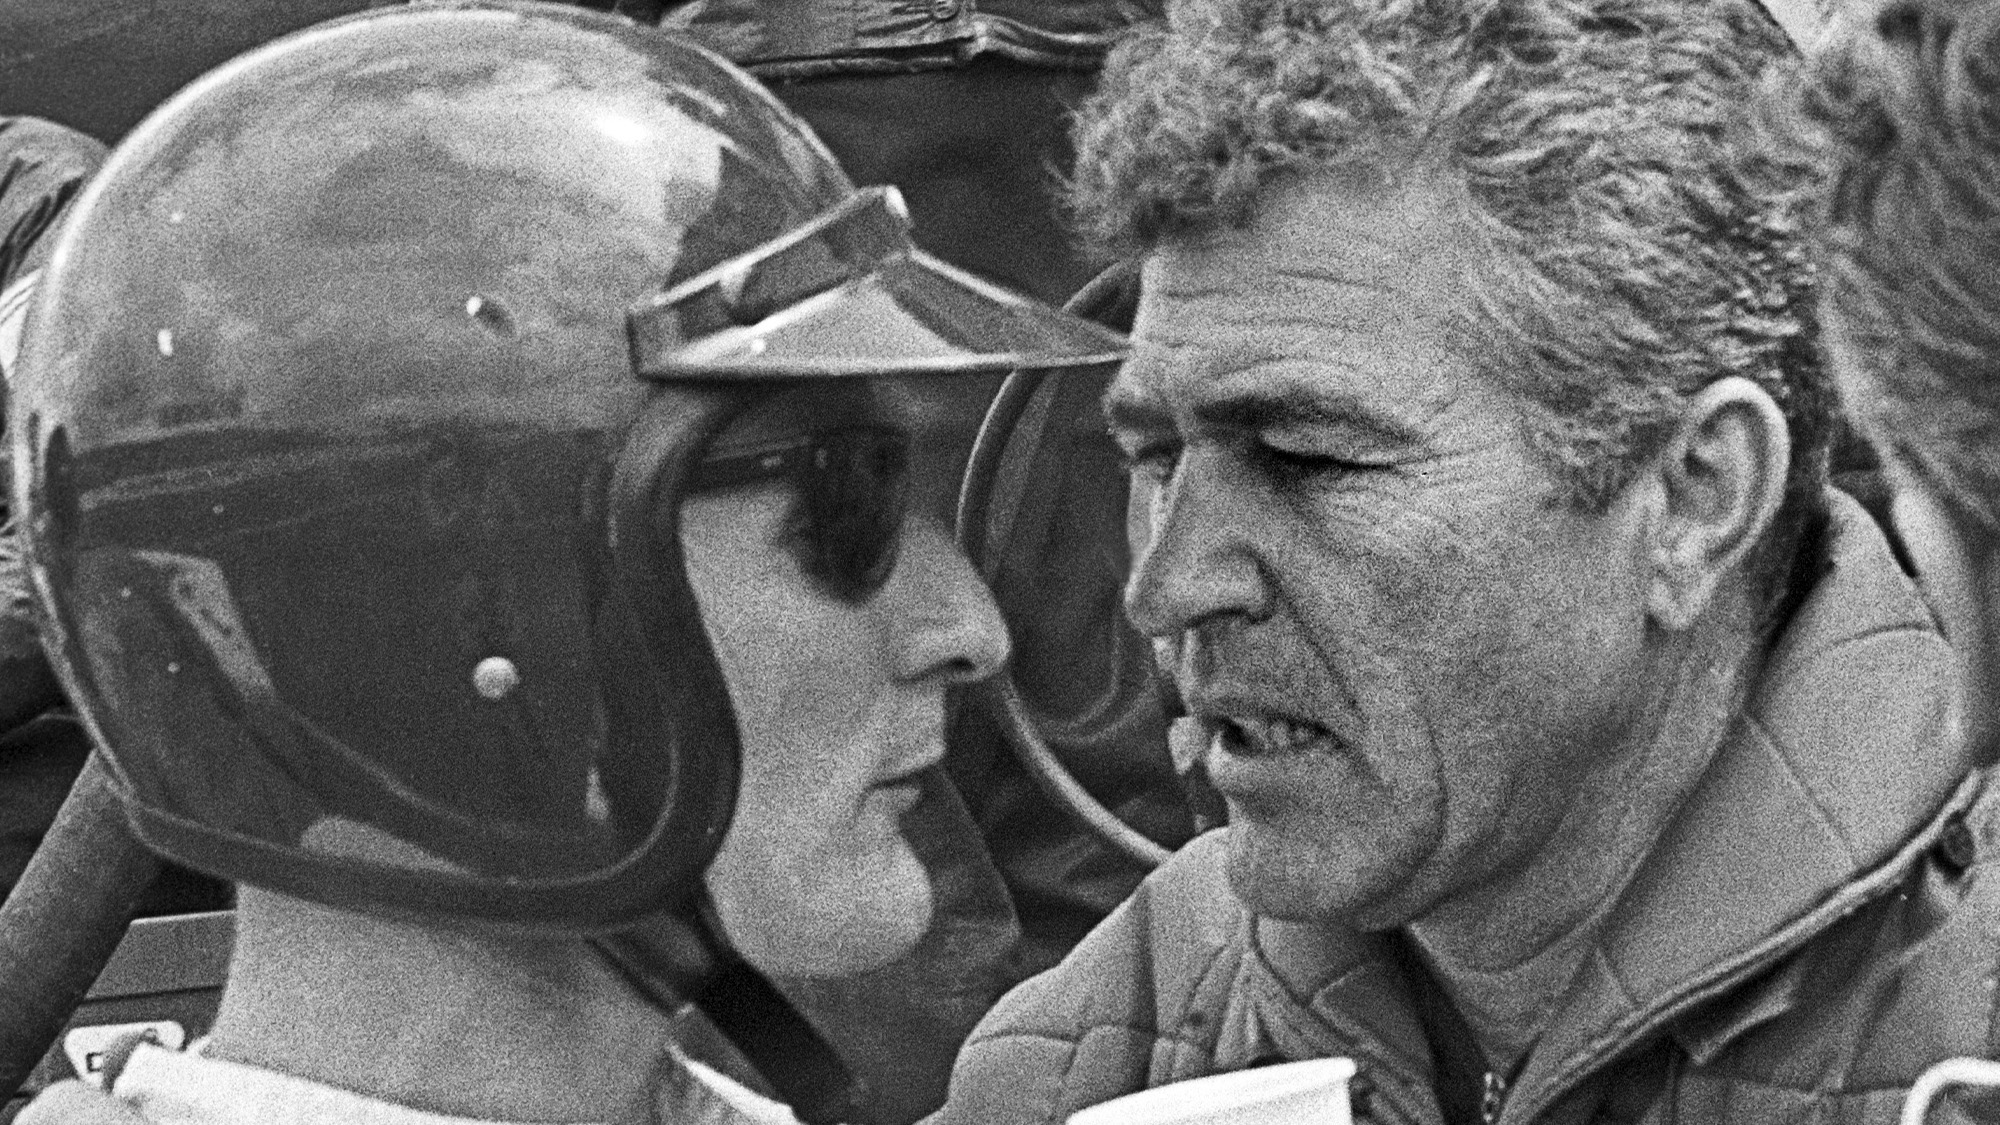 Carroll Shelby with Ken Miles at Le Mans in 1966